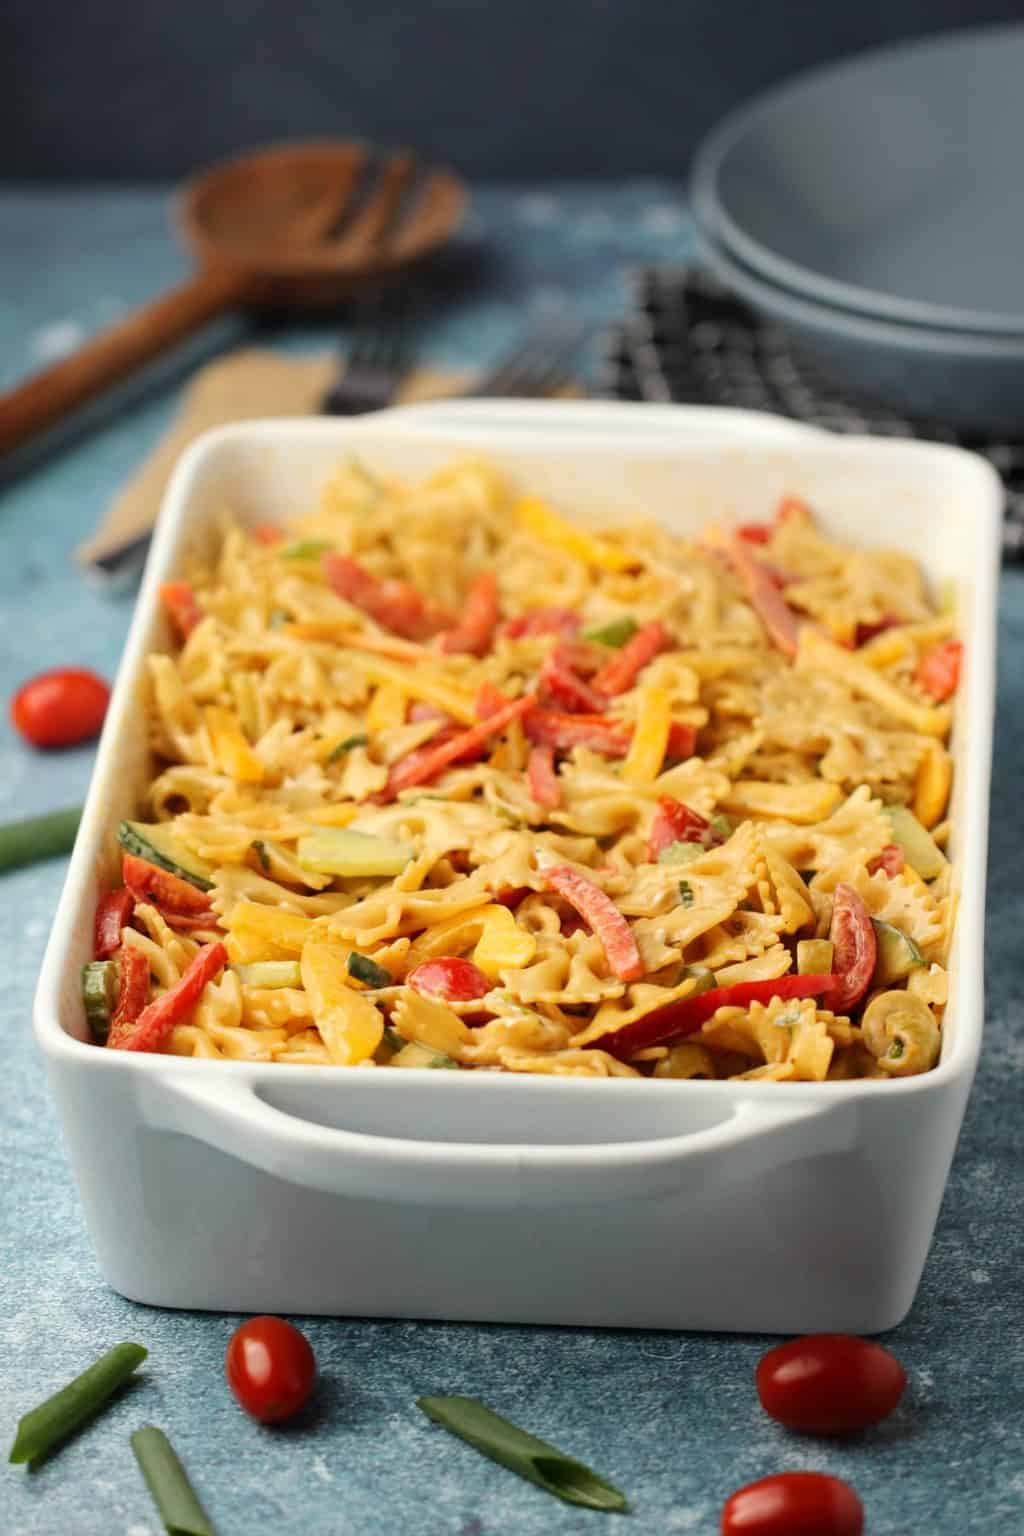 Vegan pasta salad in a rectangular white dish.